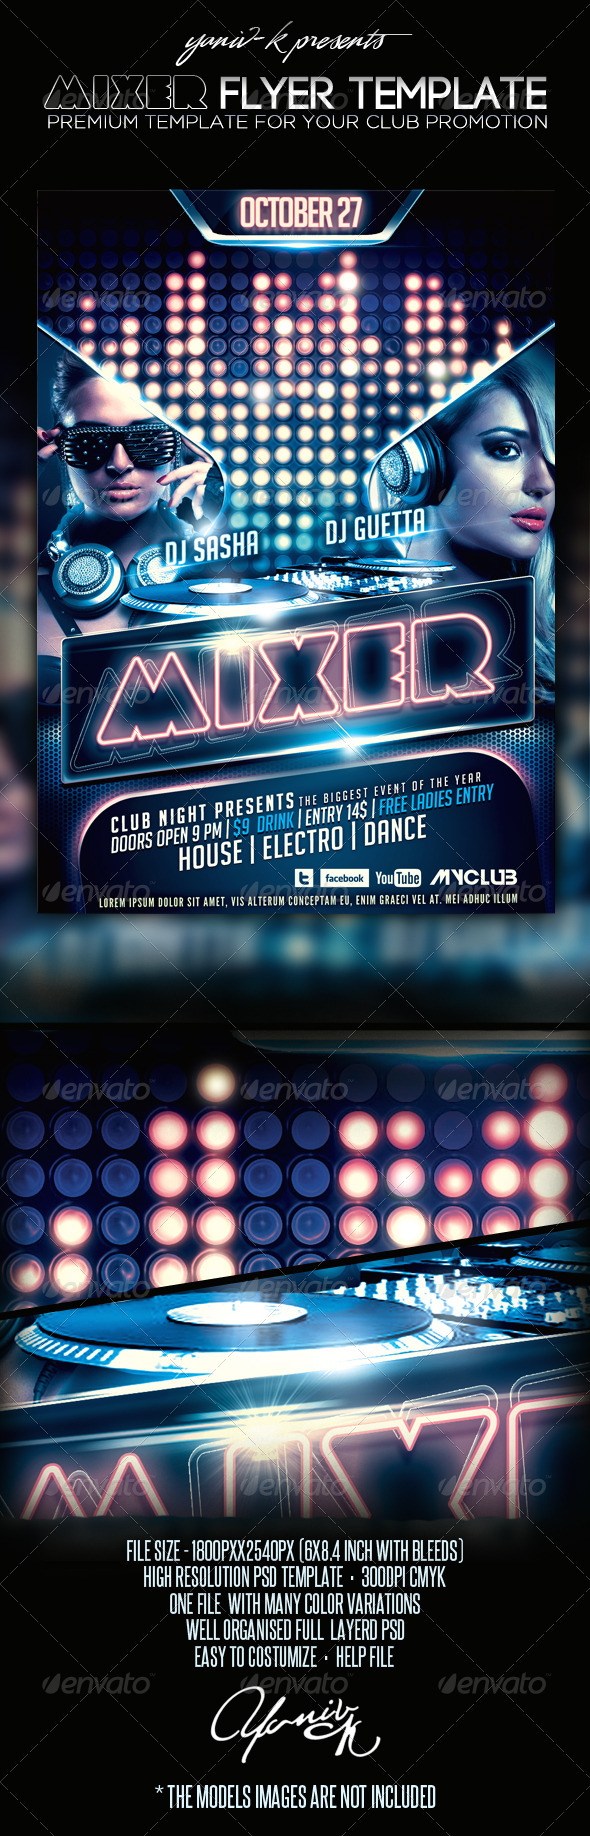 Mixer Flyer Template - Clubs & Parties Events